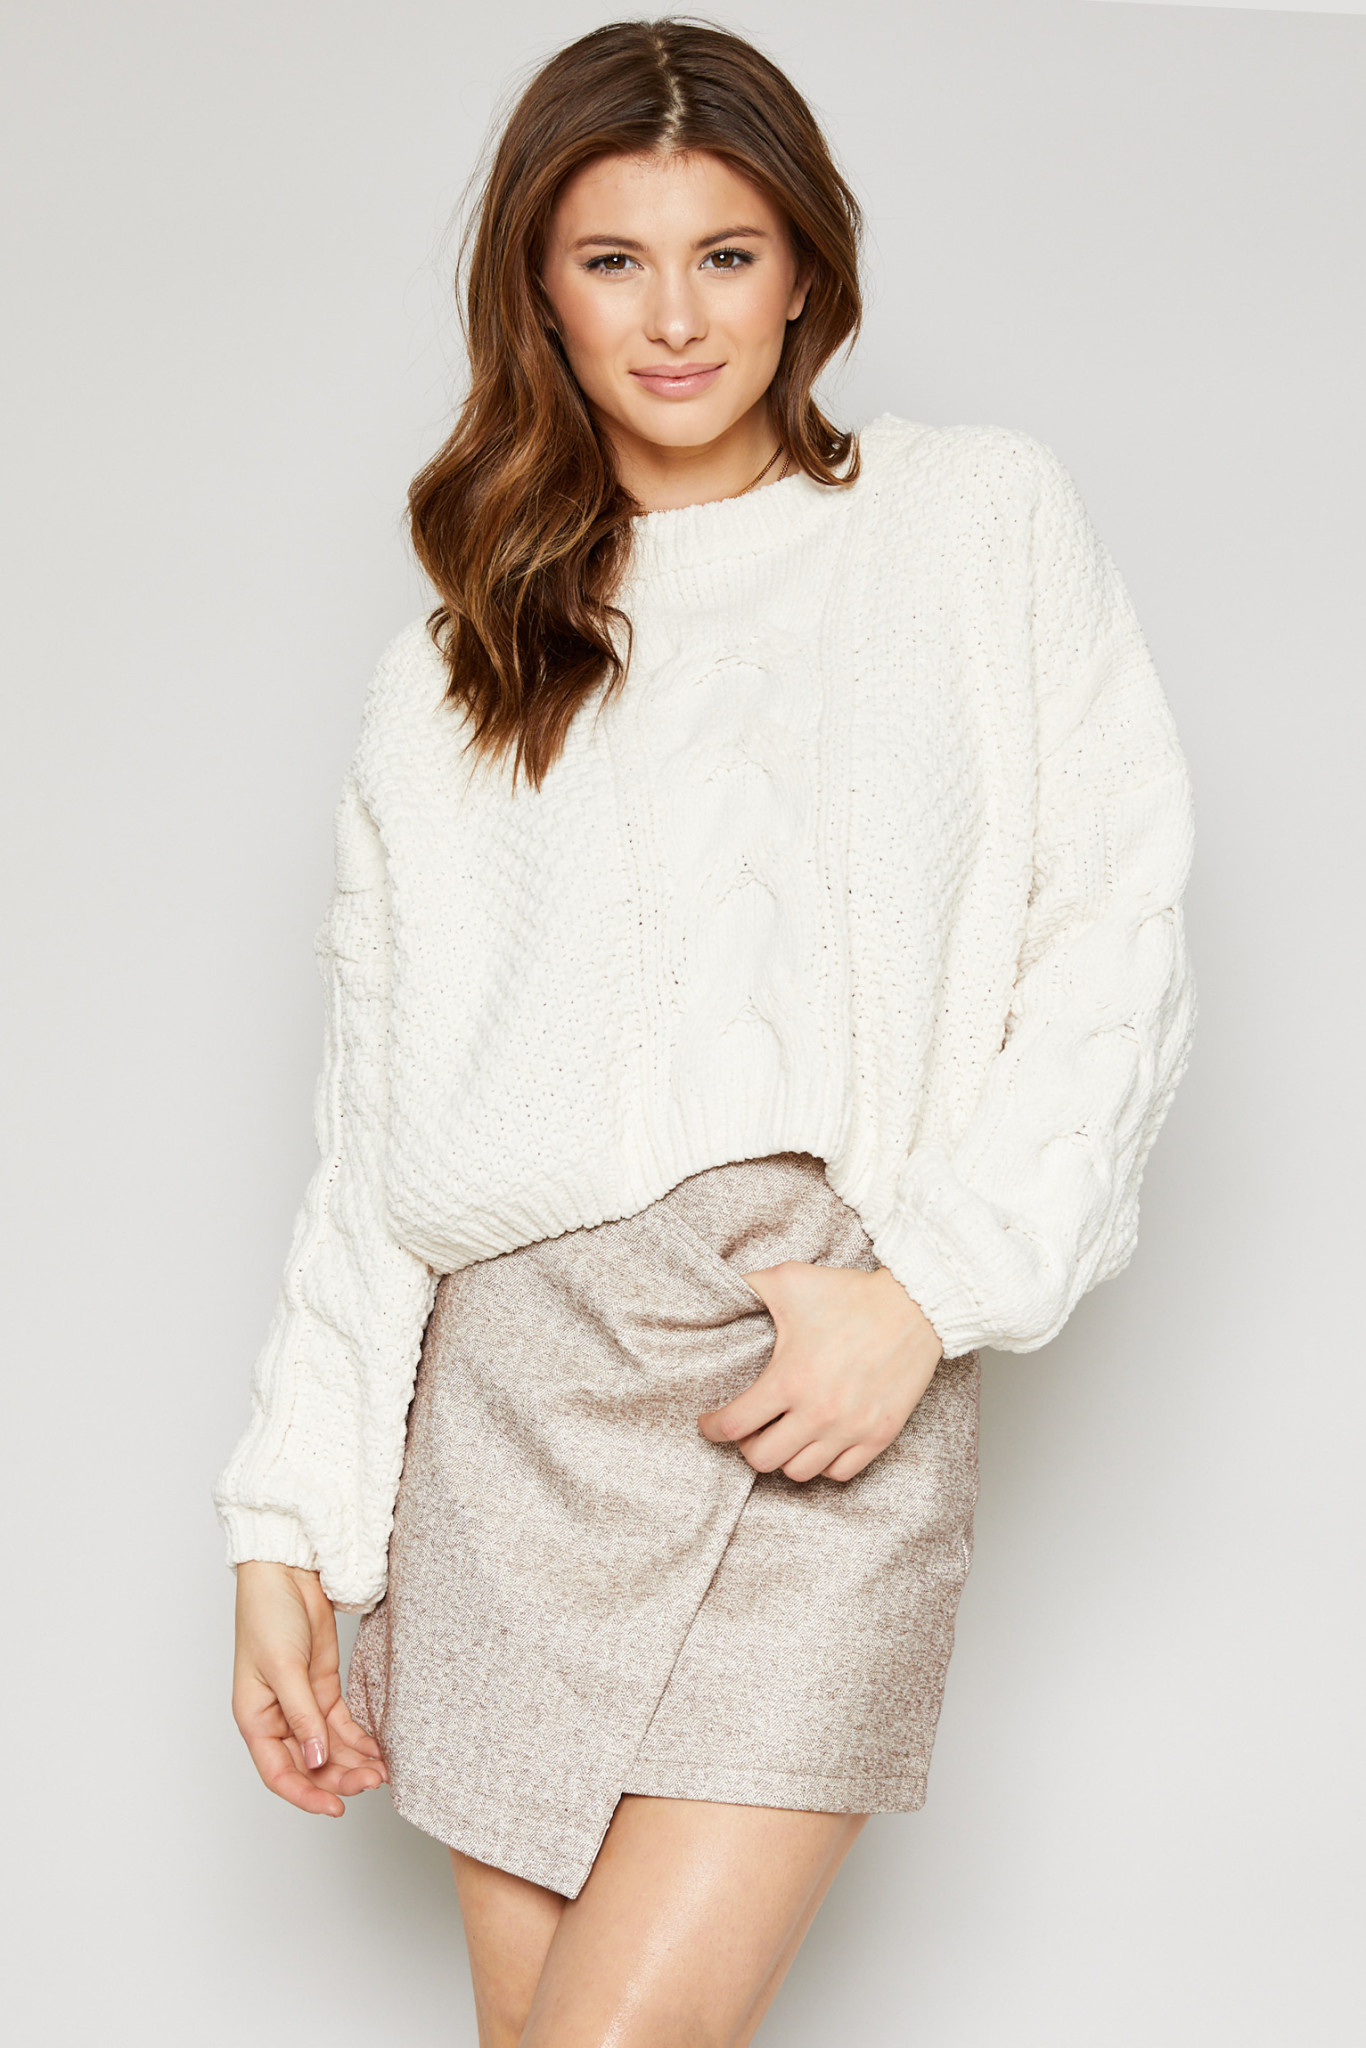 SADIE & SAGE azalea heavy cropped sweater